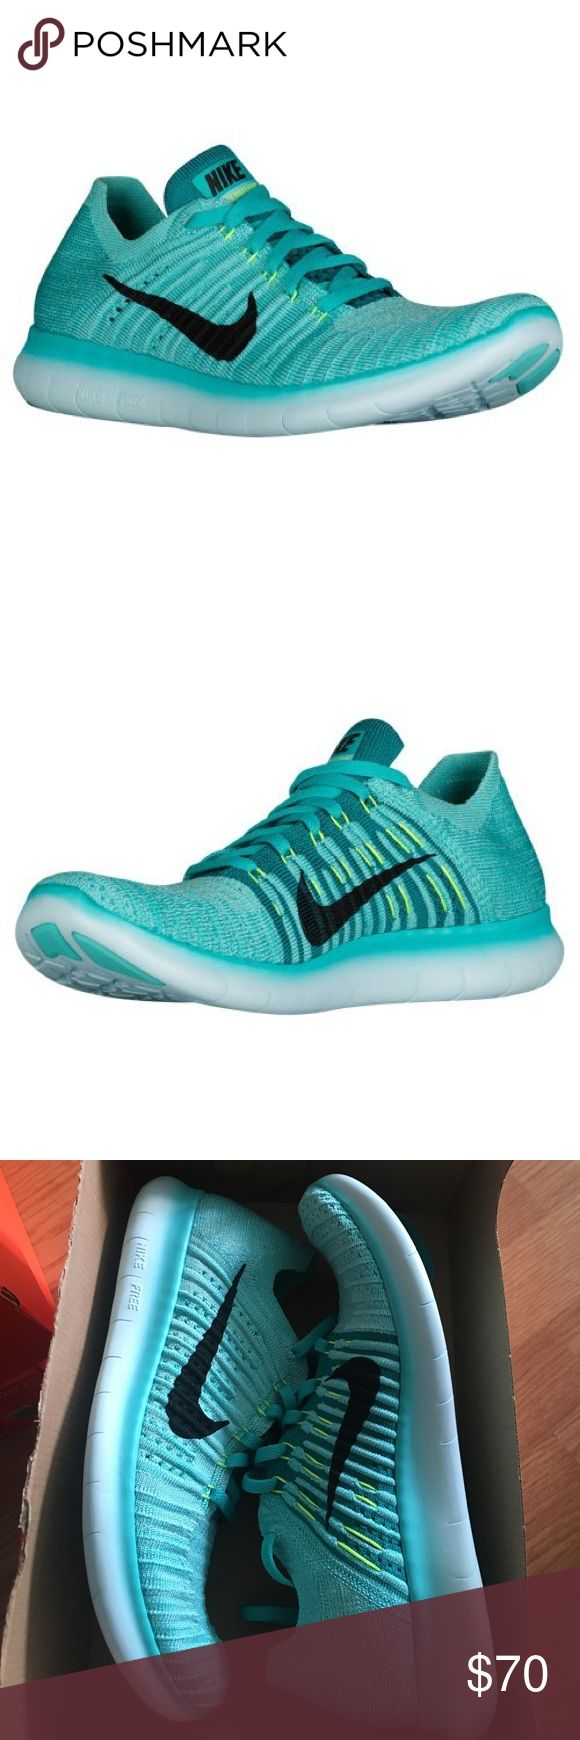 NEW women's Nike Free RN Flyknit shoes Brand new women's Nike Free RN Flyknit shoes. No trades Tiffany blue color. Hyper turq/black-volt-rio teal color code. 100% authentic Nike Shoes Athletic Shoes